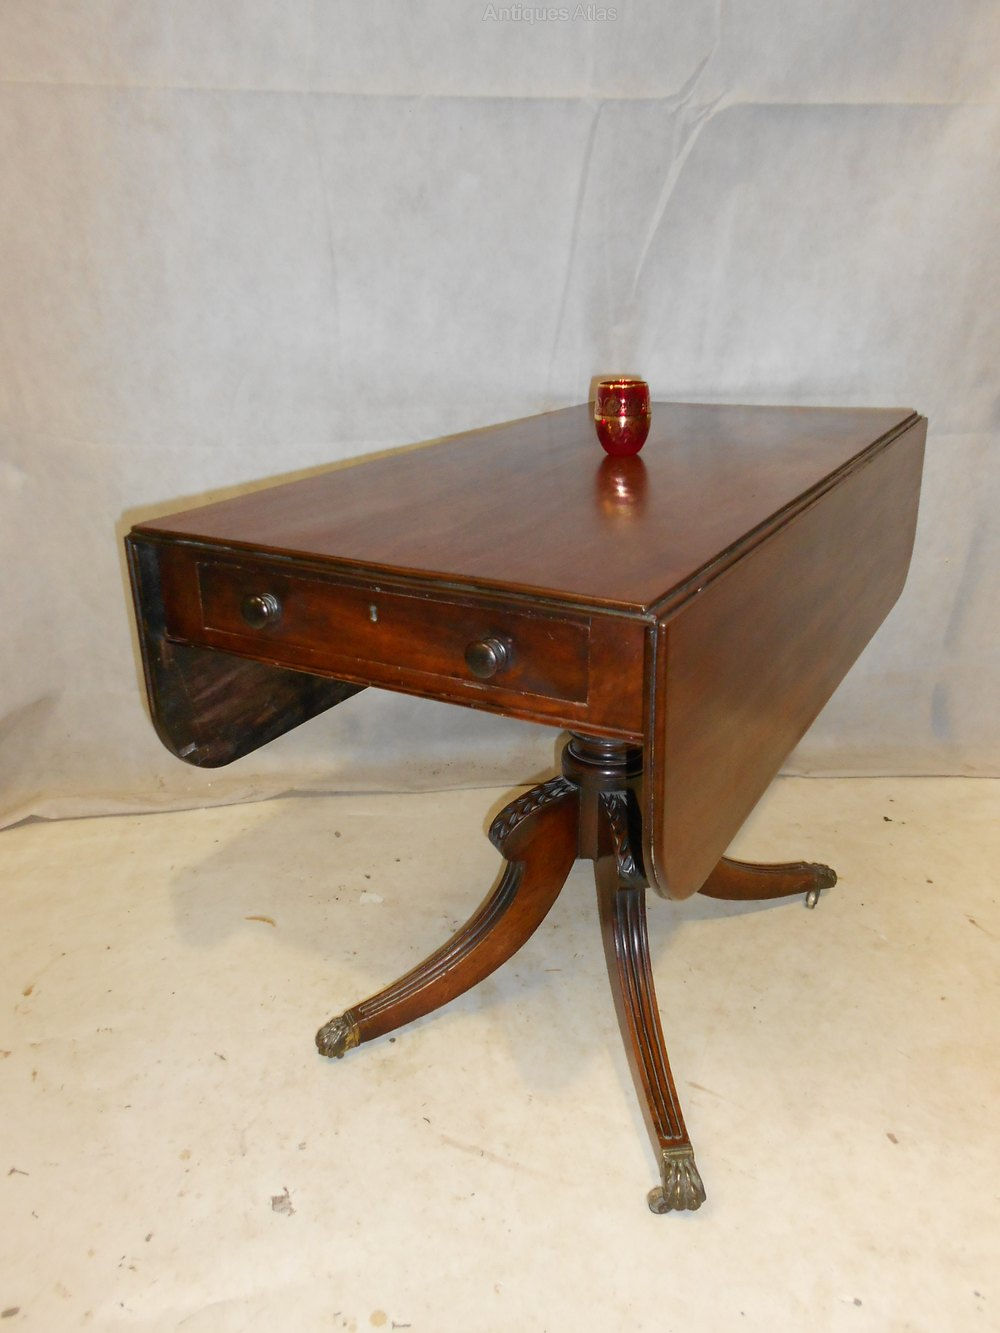 Antique regency sofa table c1811 20 antiques atlas for Sofa table antique